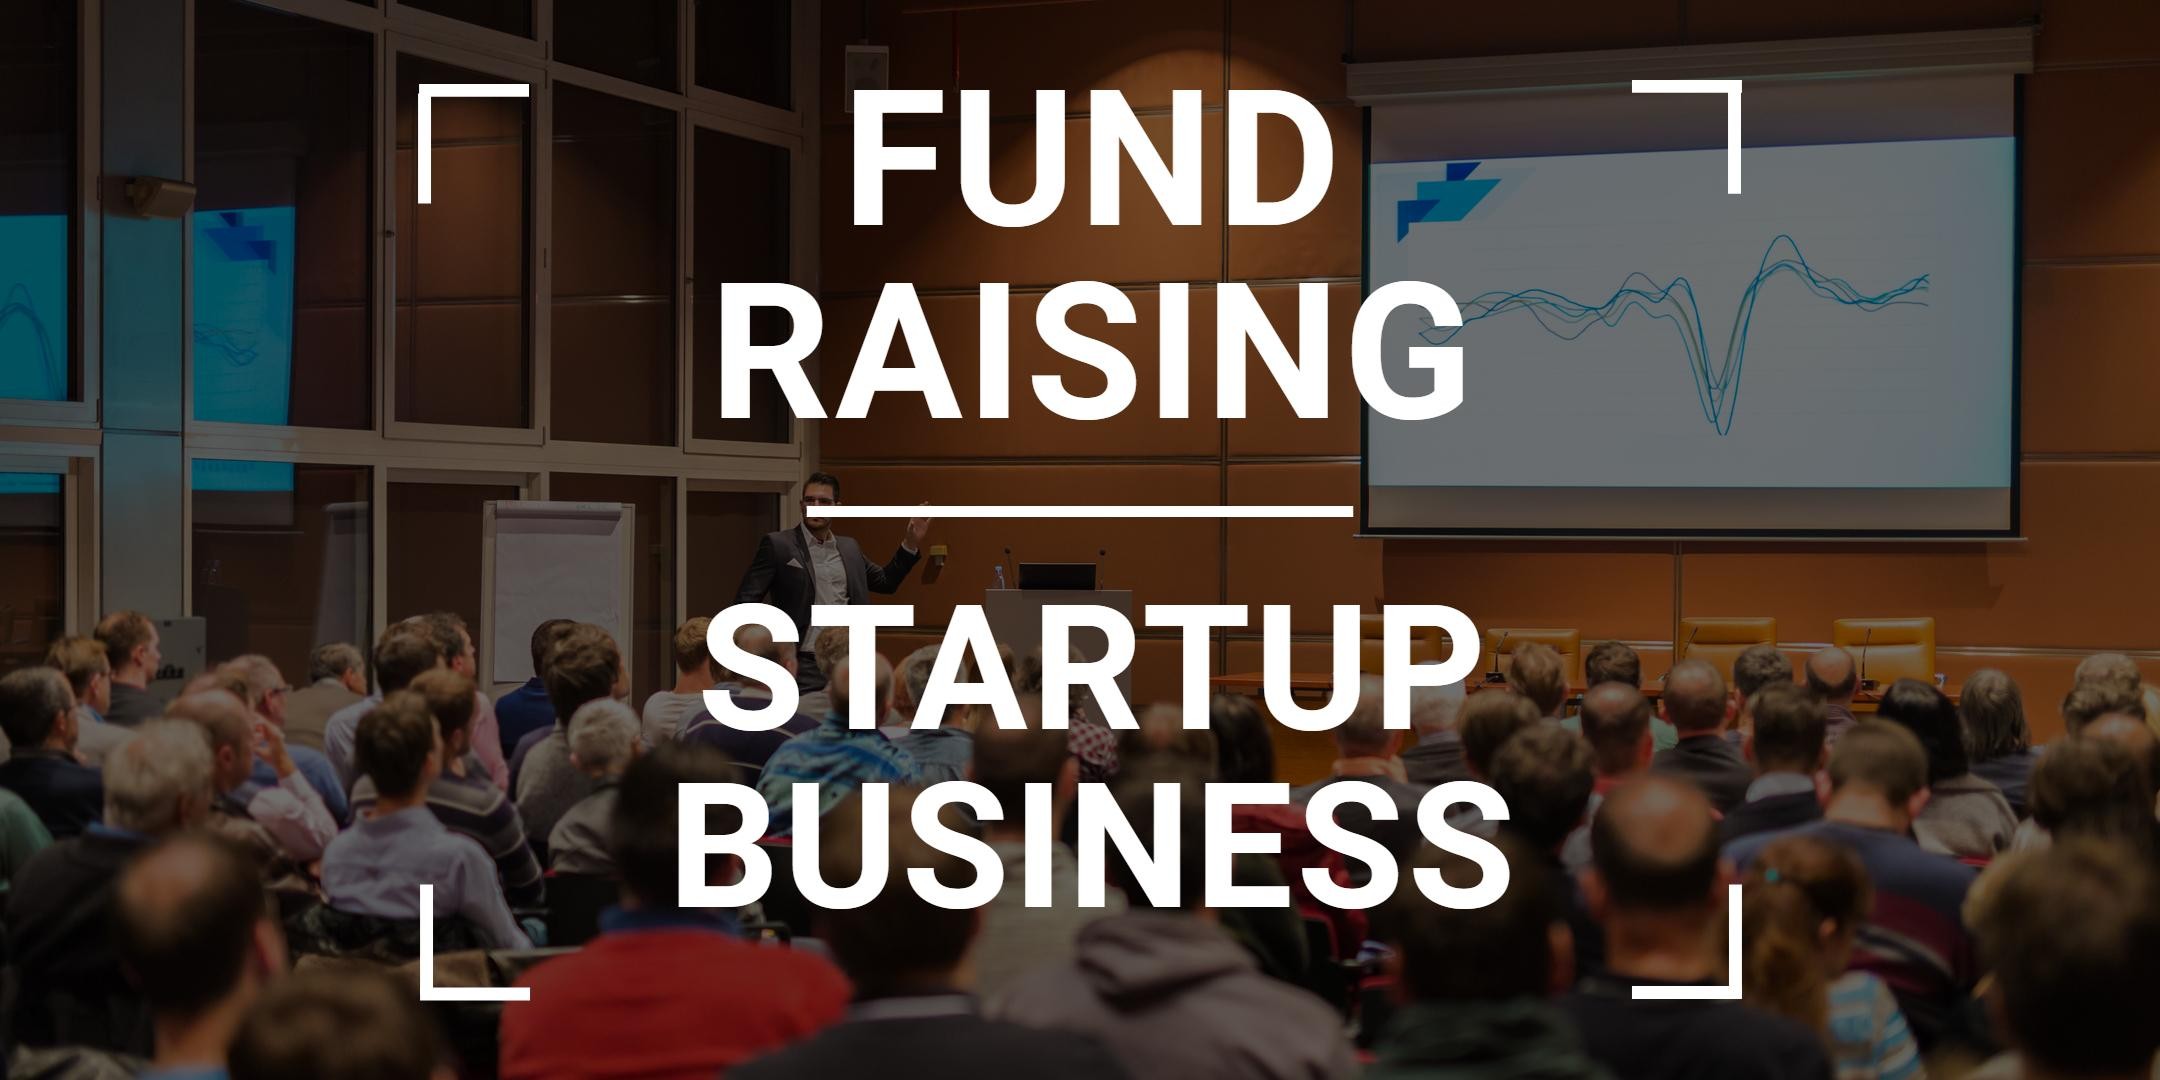 Fund Raising for Startups & Businesses